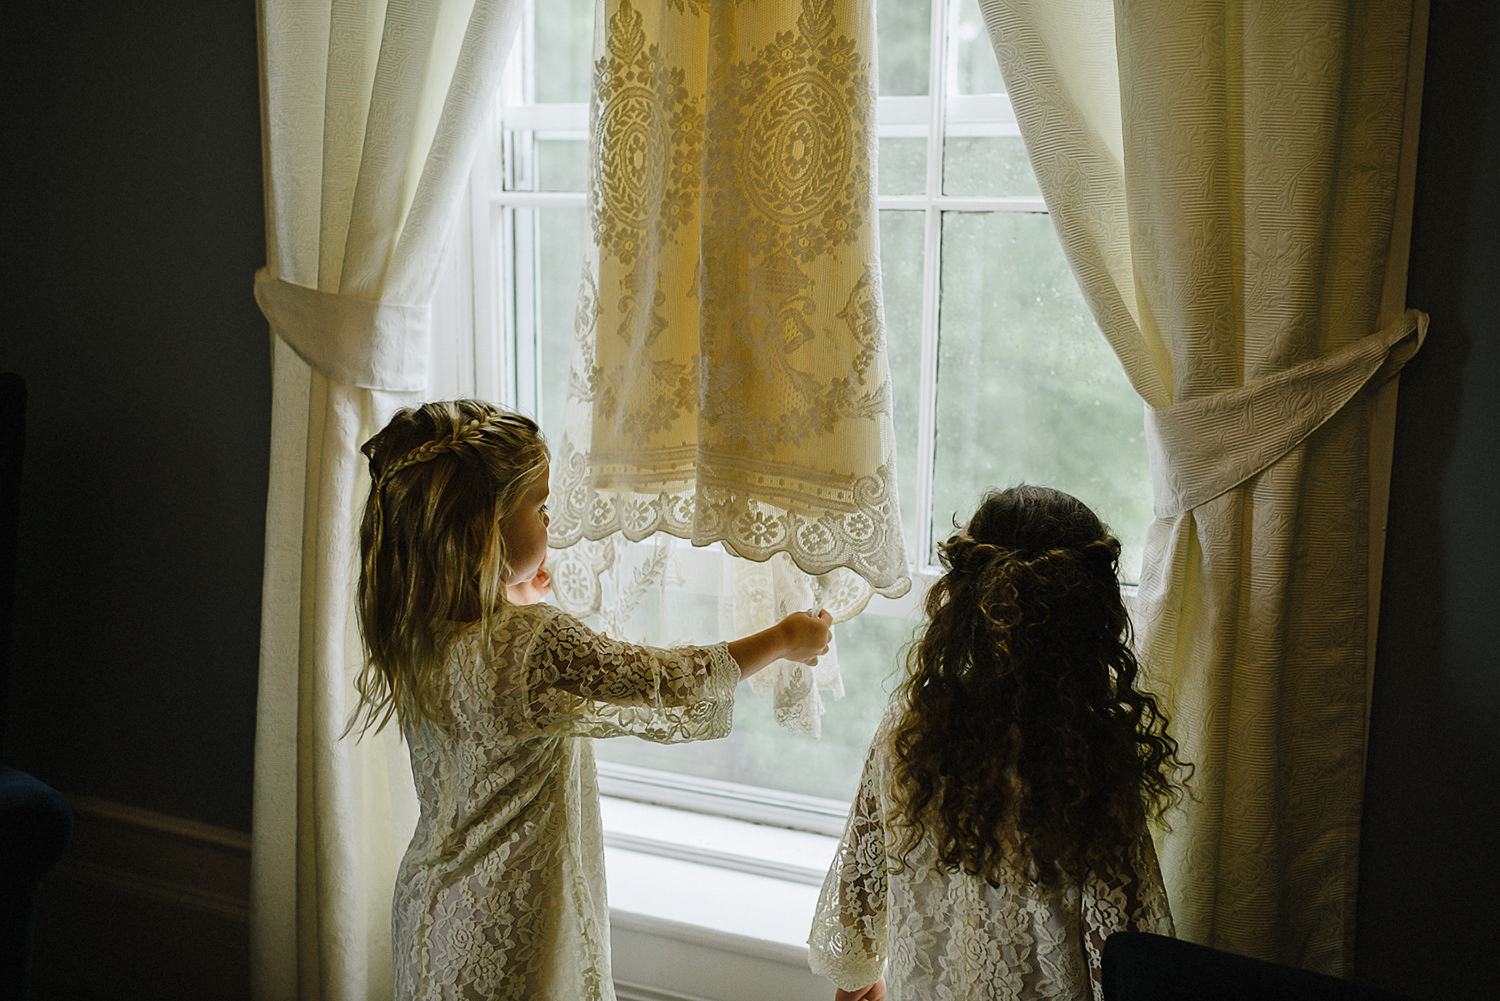 Best-Moody-Documentary-Wedding-Photography-Vintage-Small-Town-Chapel-Wedding-Toronto-Ontario_Flowr-Girls--playing-with-bride-dress.jpg